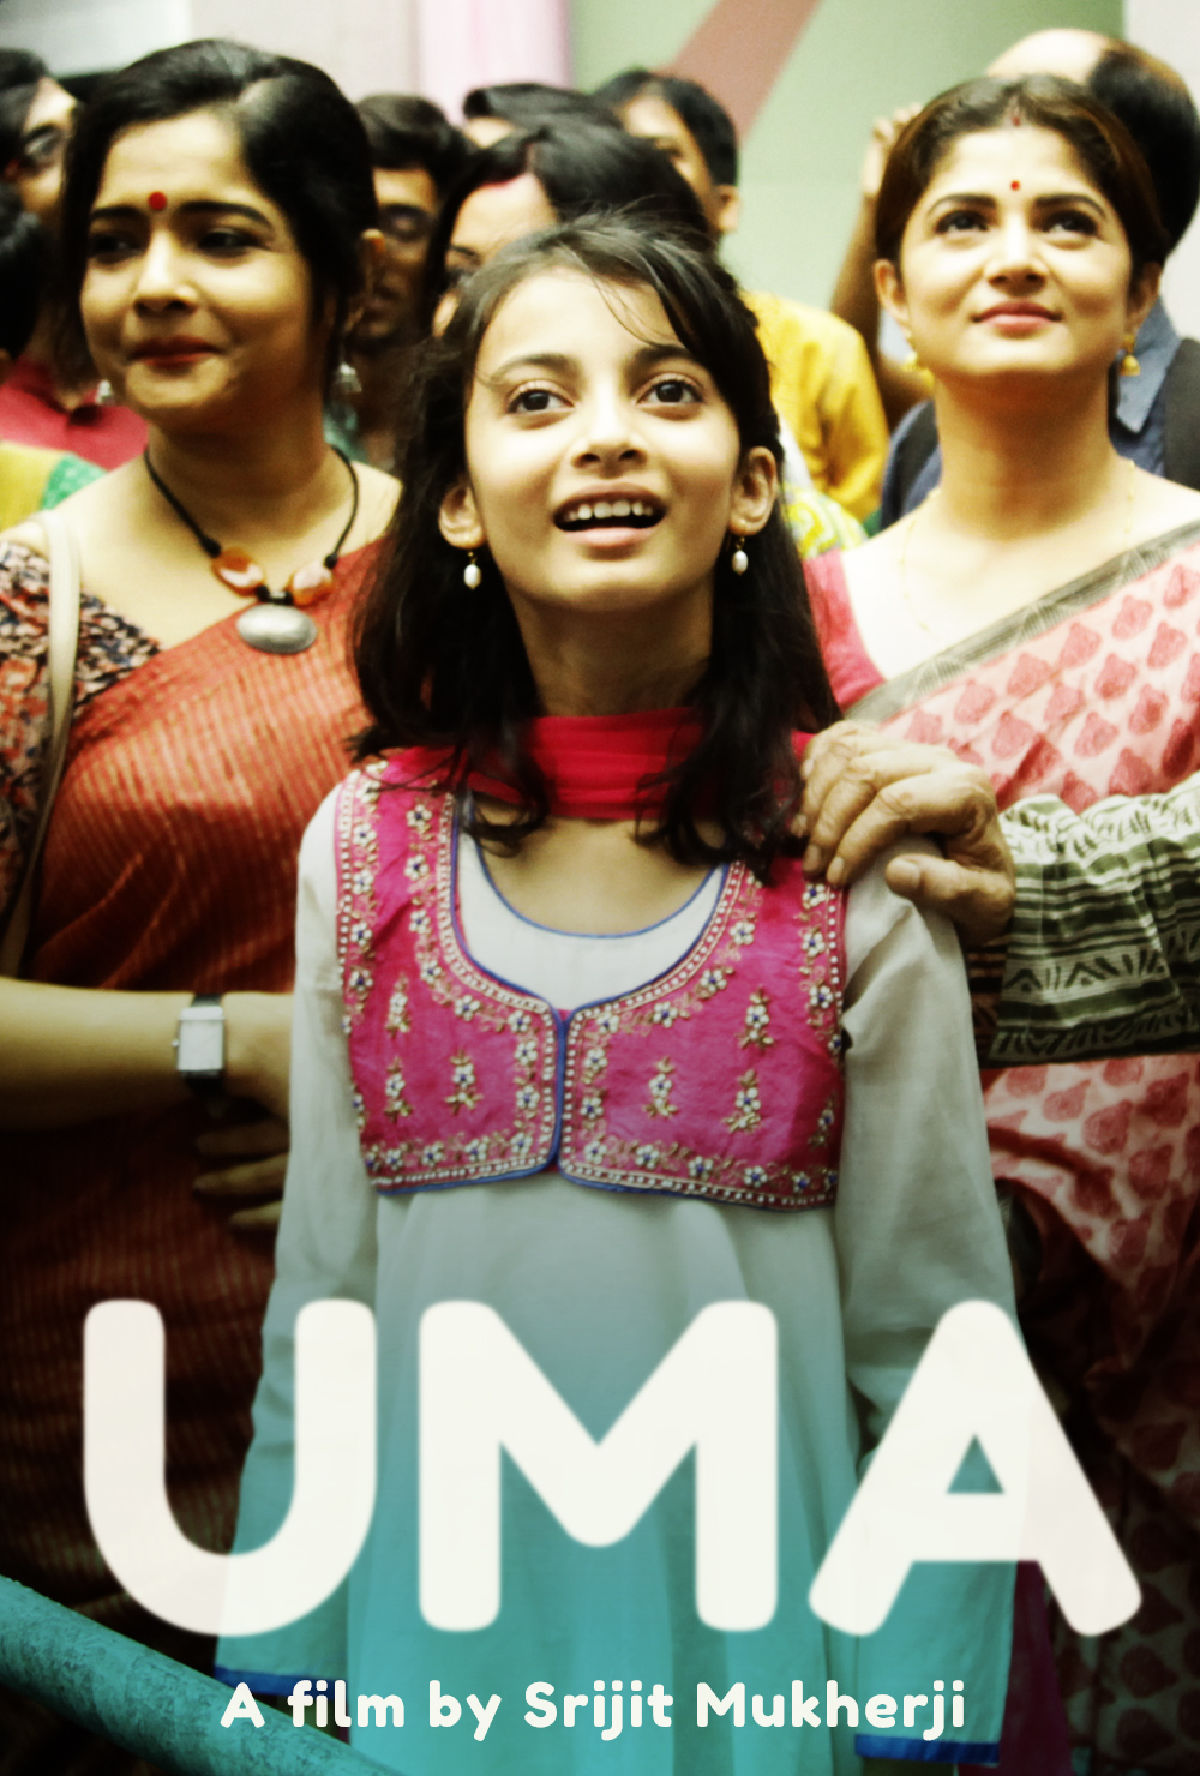 'Uma' movie poster